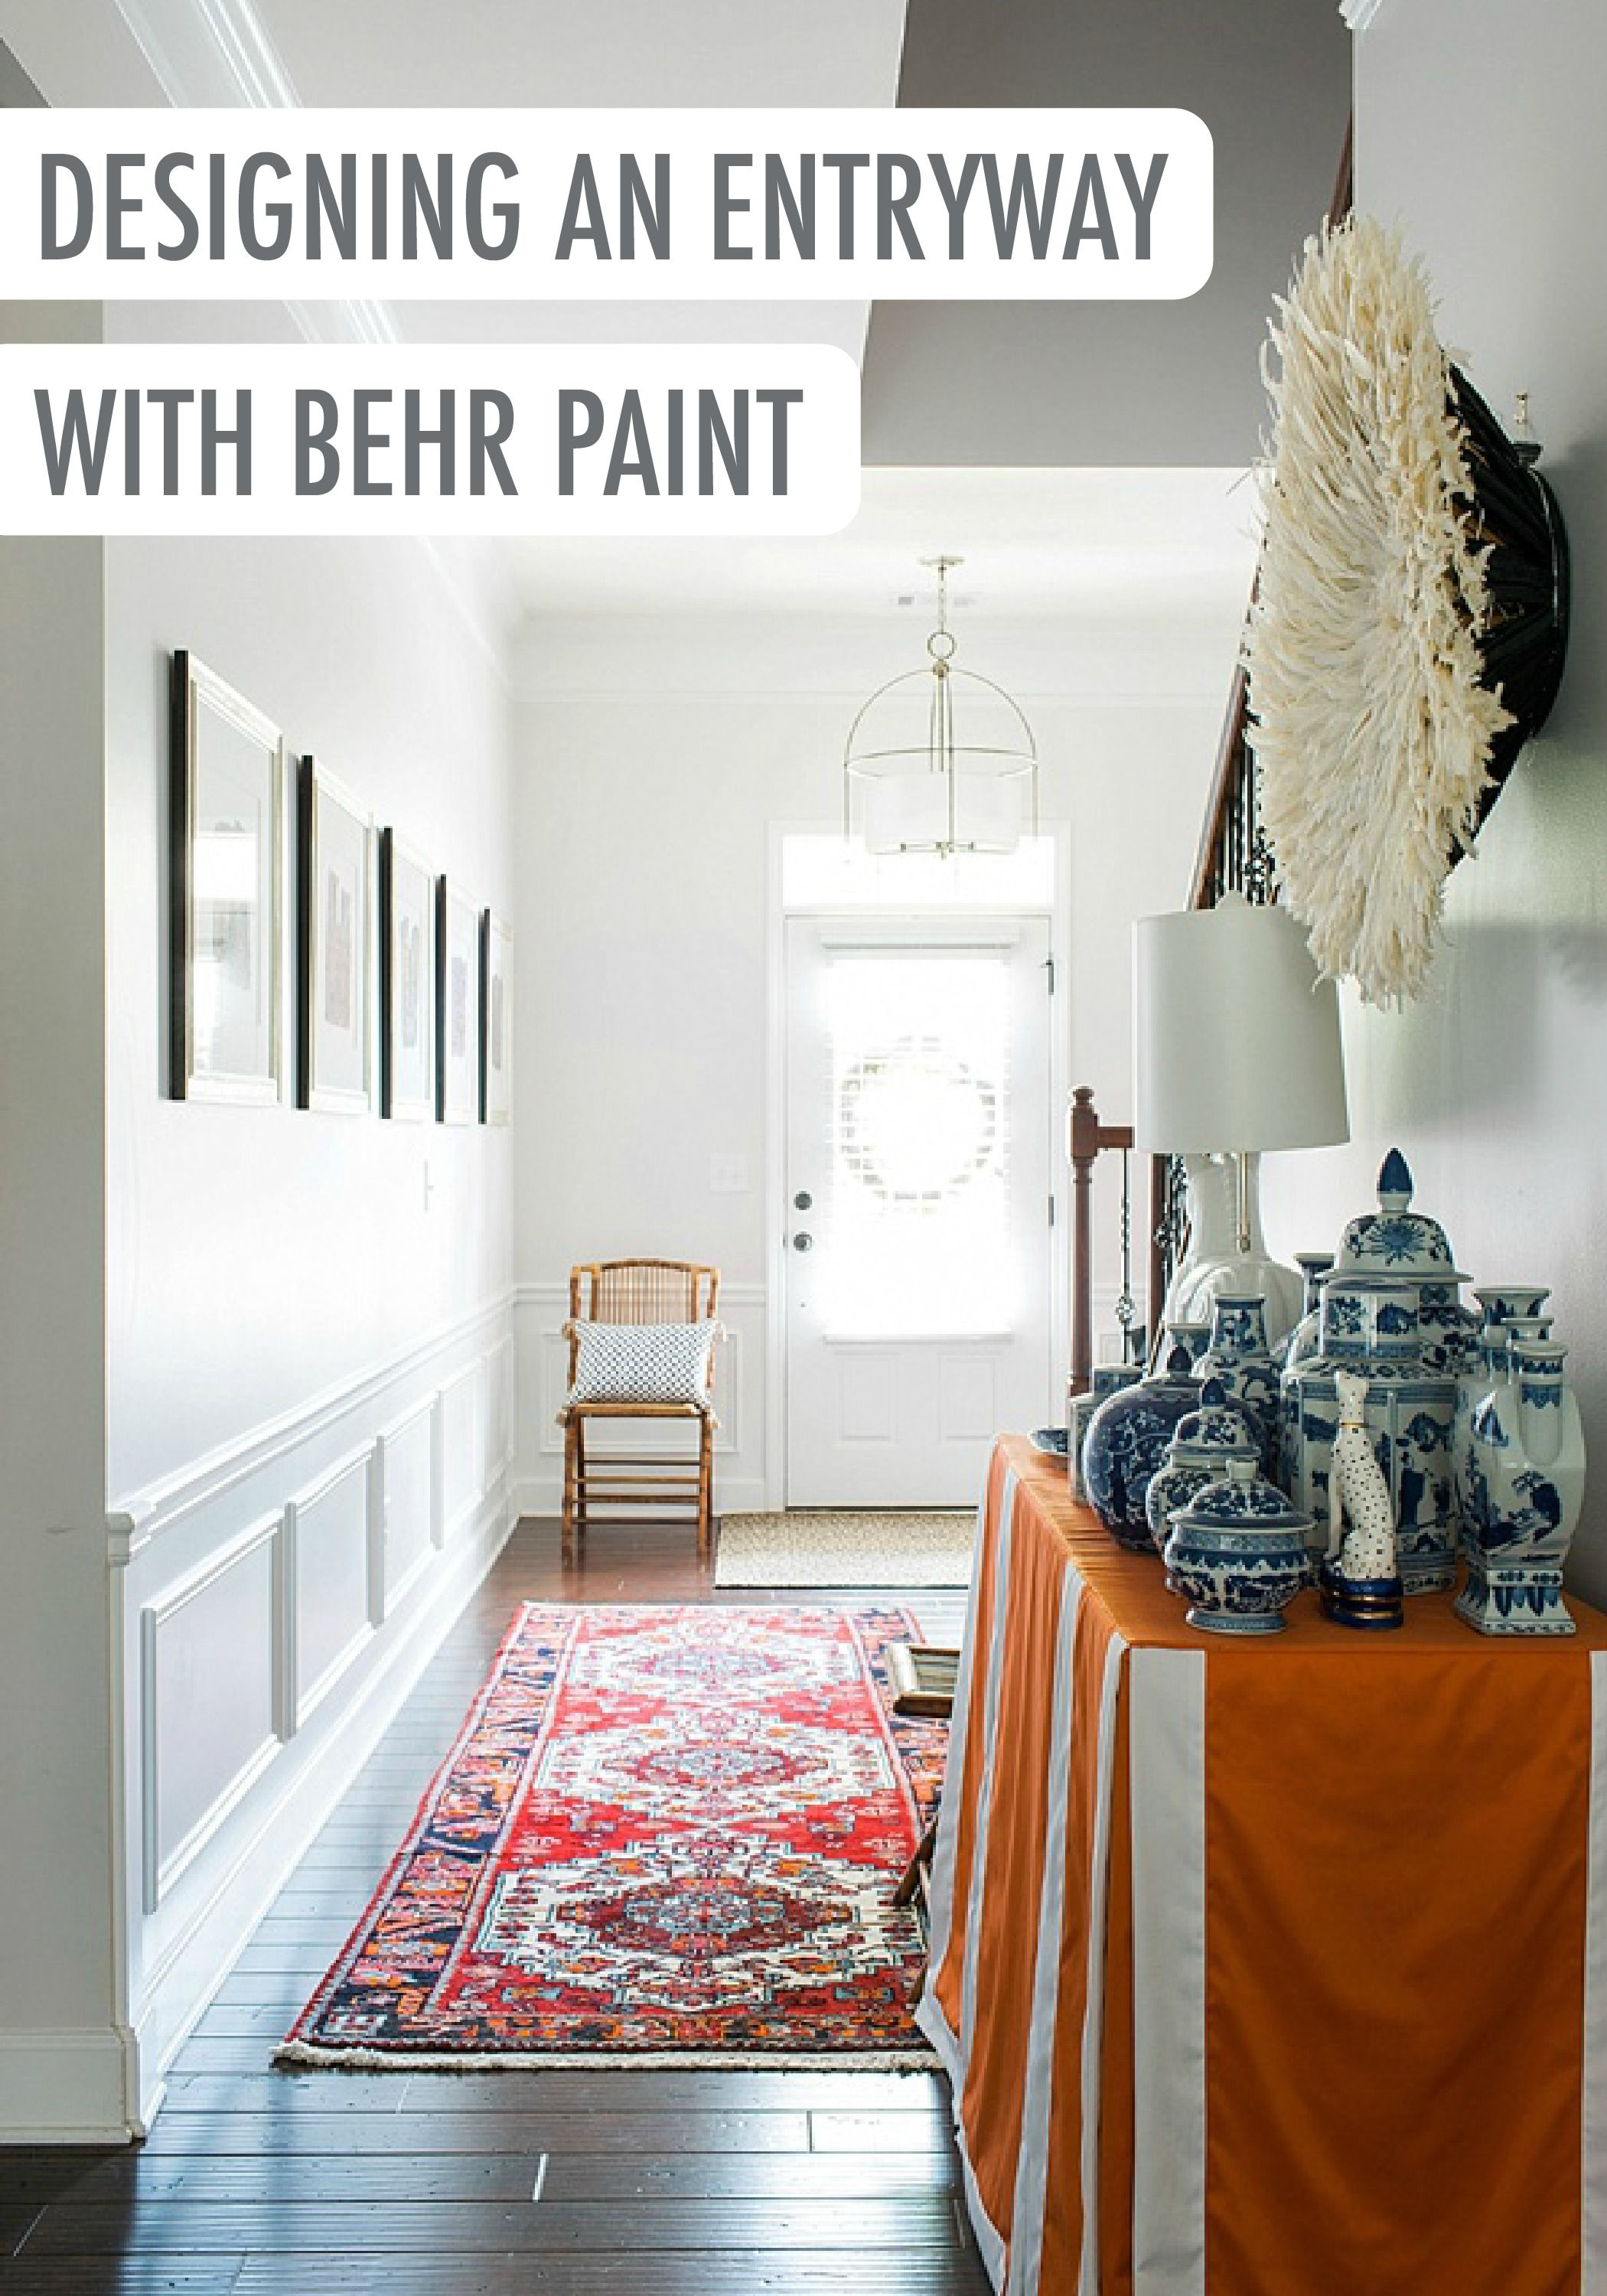 Designing An Eclectic Entryway In Your New Home Is Easy Simply Pair Unique Accessories Like Patterned Pottery With A Timeless Shade Of Gray Behr Paint Such